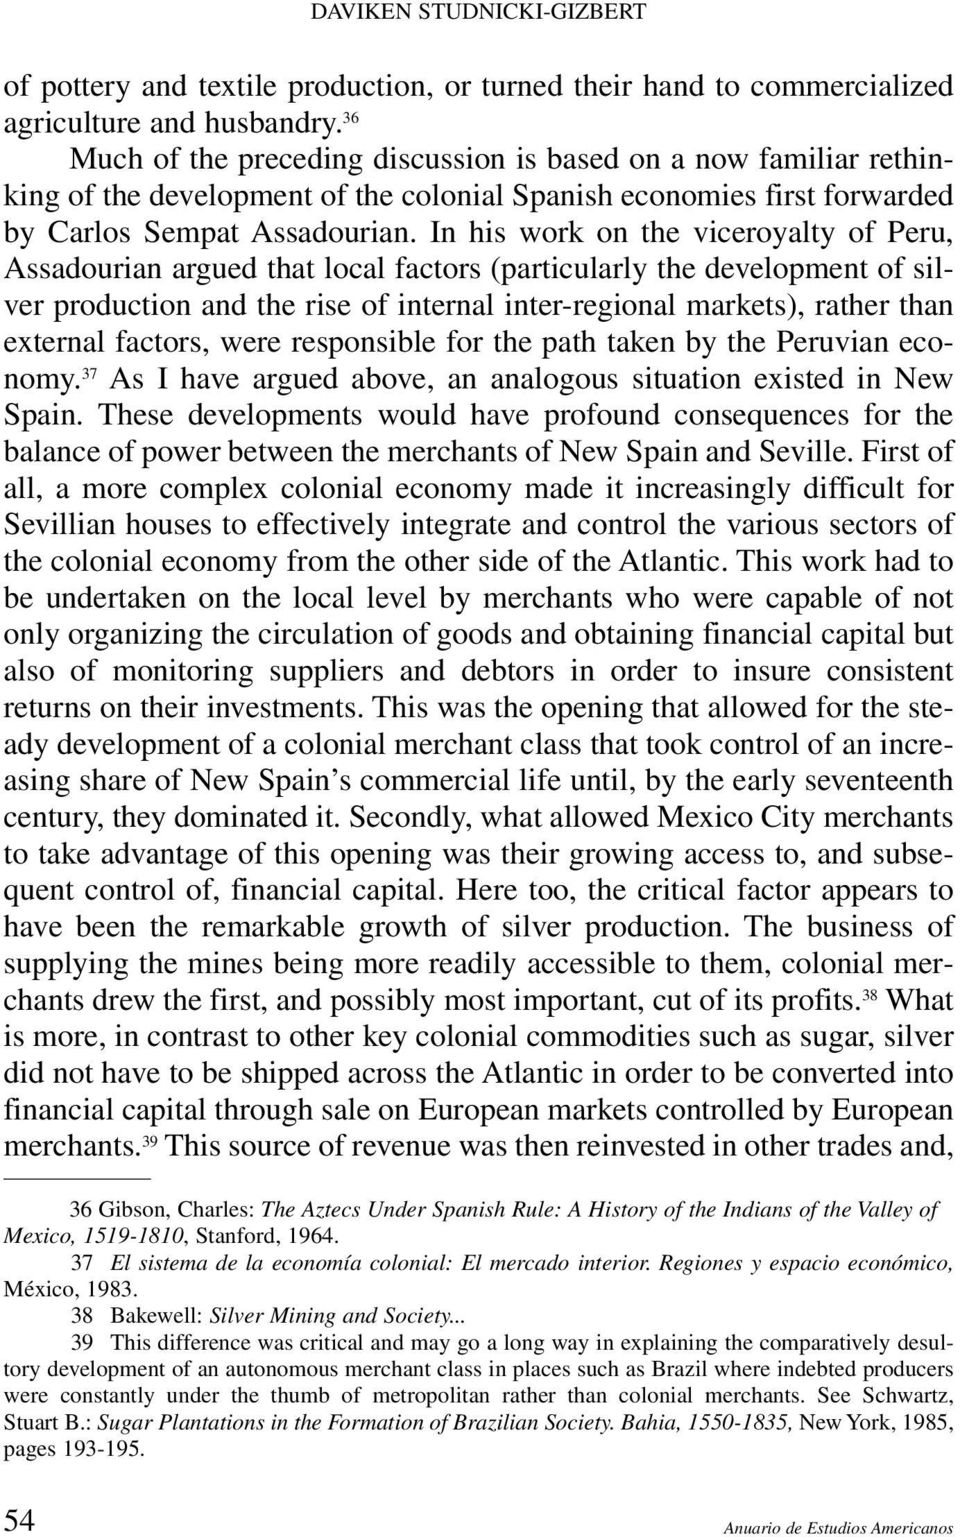 In his work on the viceroyalty of Peru, Assadourian argued that local factors (particularly the development of silver production and the rise of internal inter-regional markets), rather than external